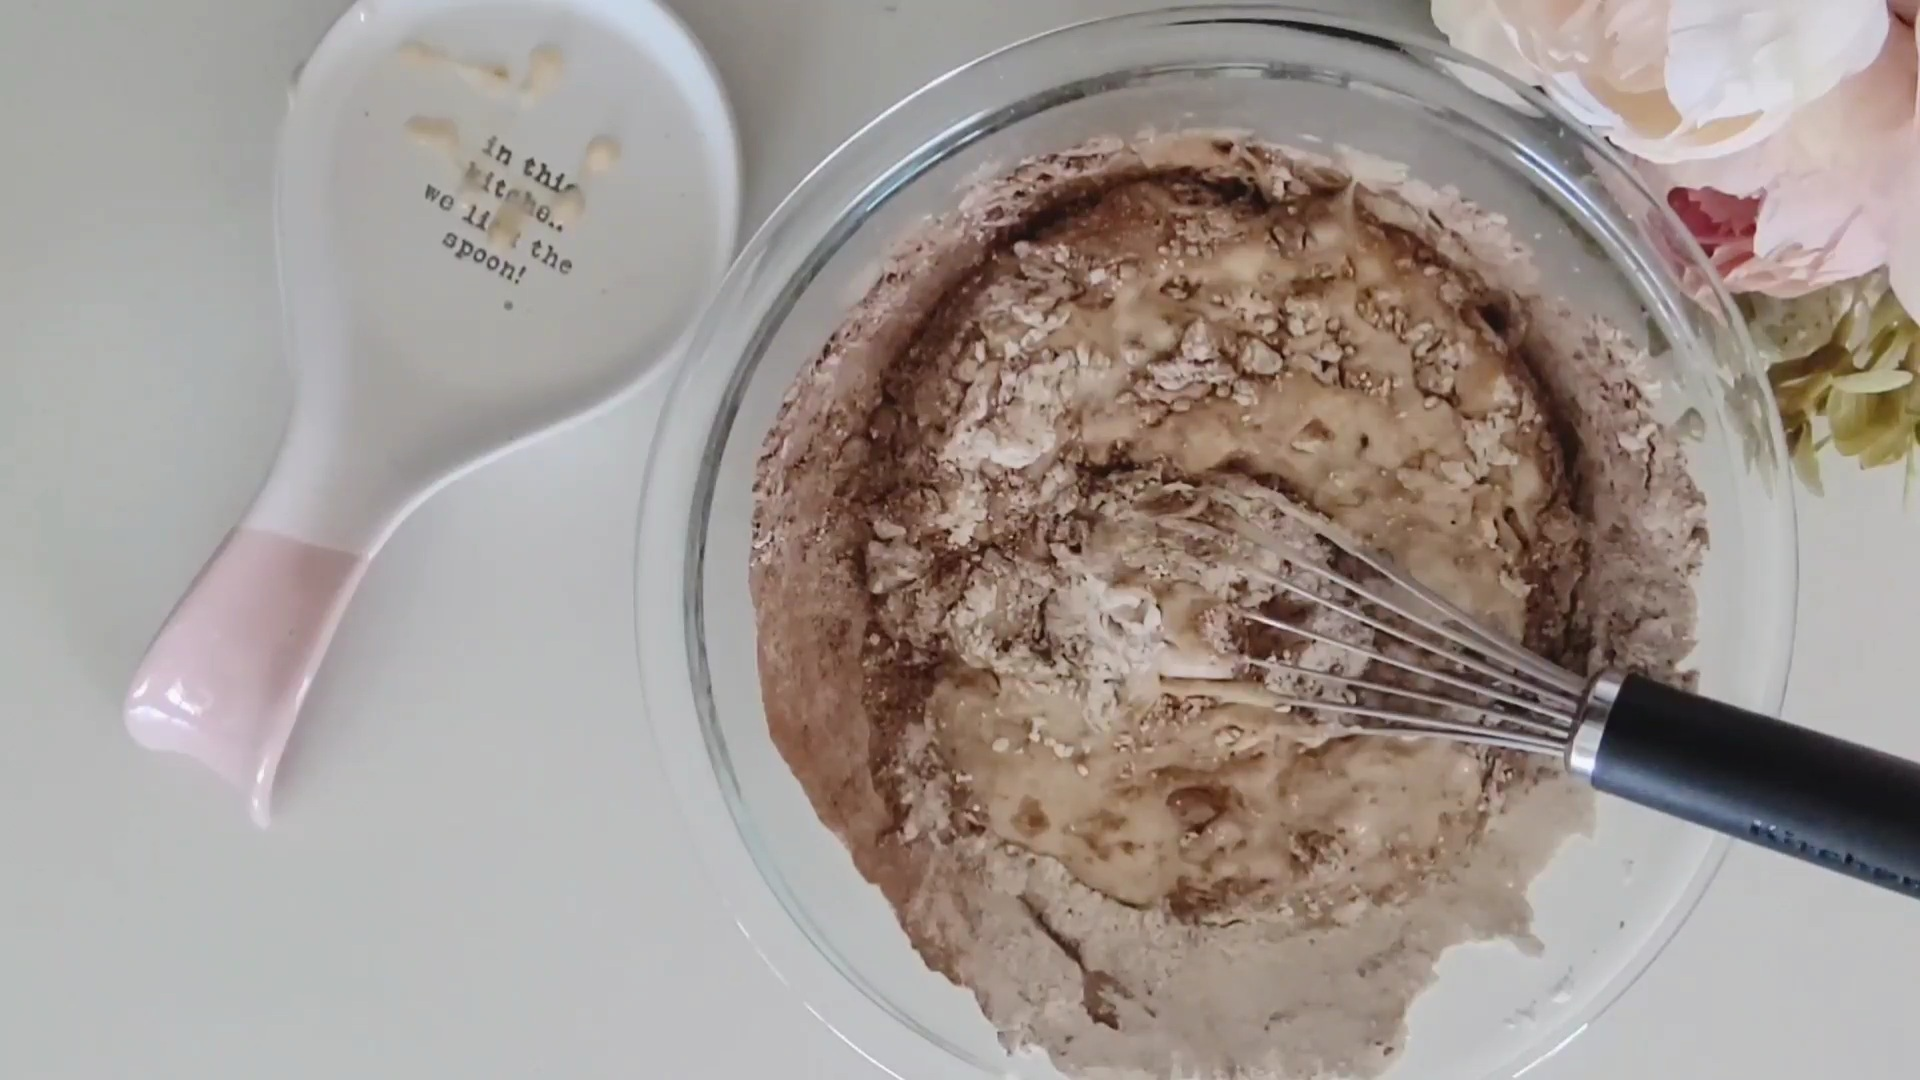 partially mixed muffins batter